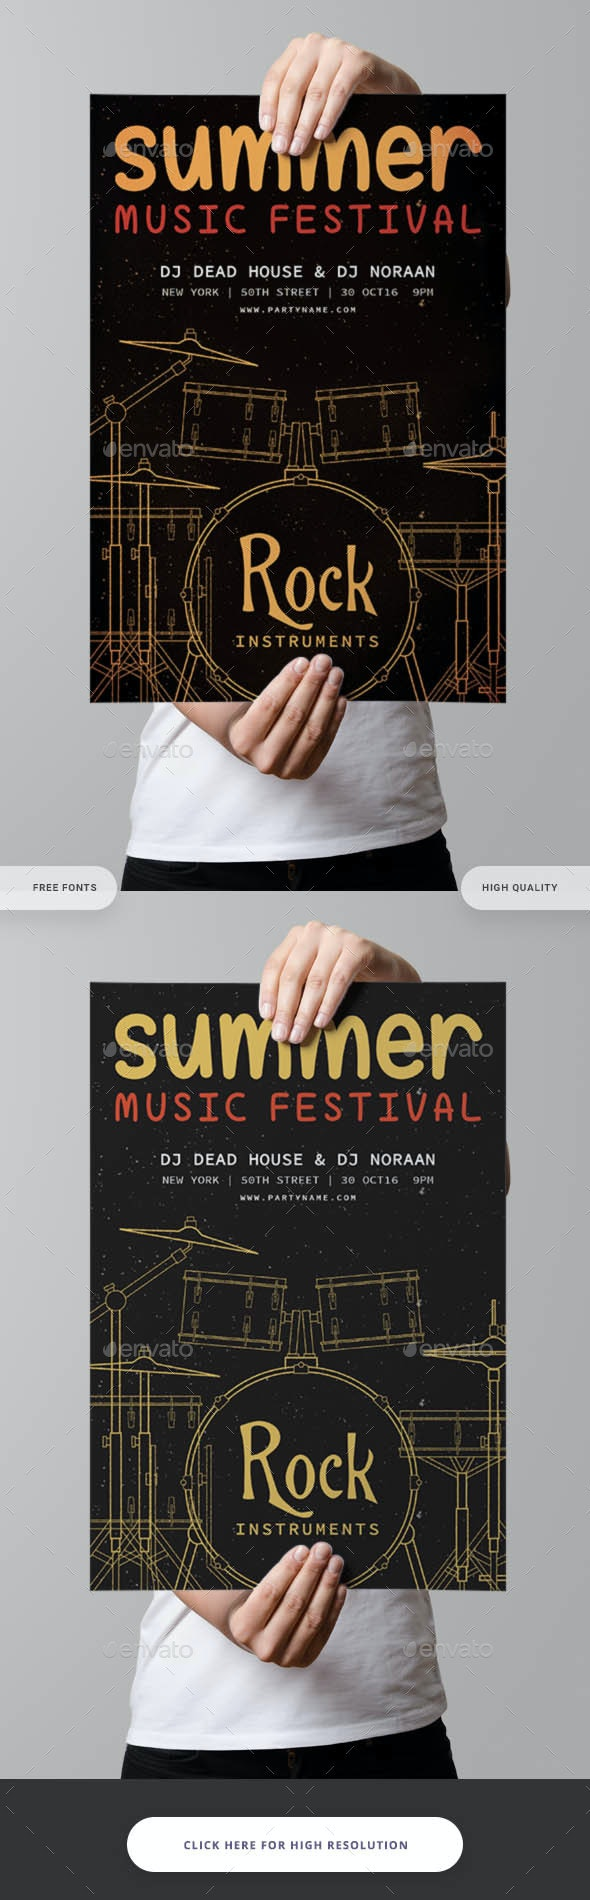 Summer Music Festival Flyer Template - Clubs & Parties Events